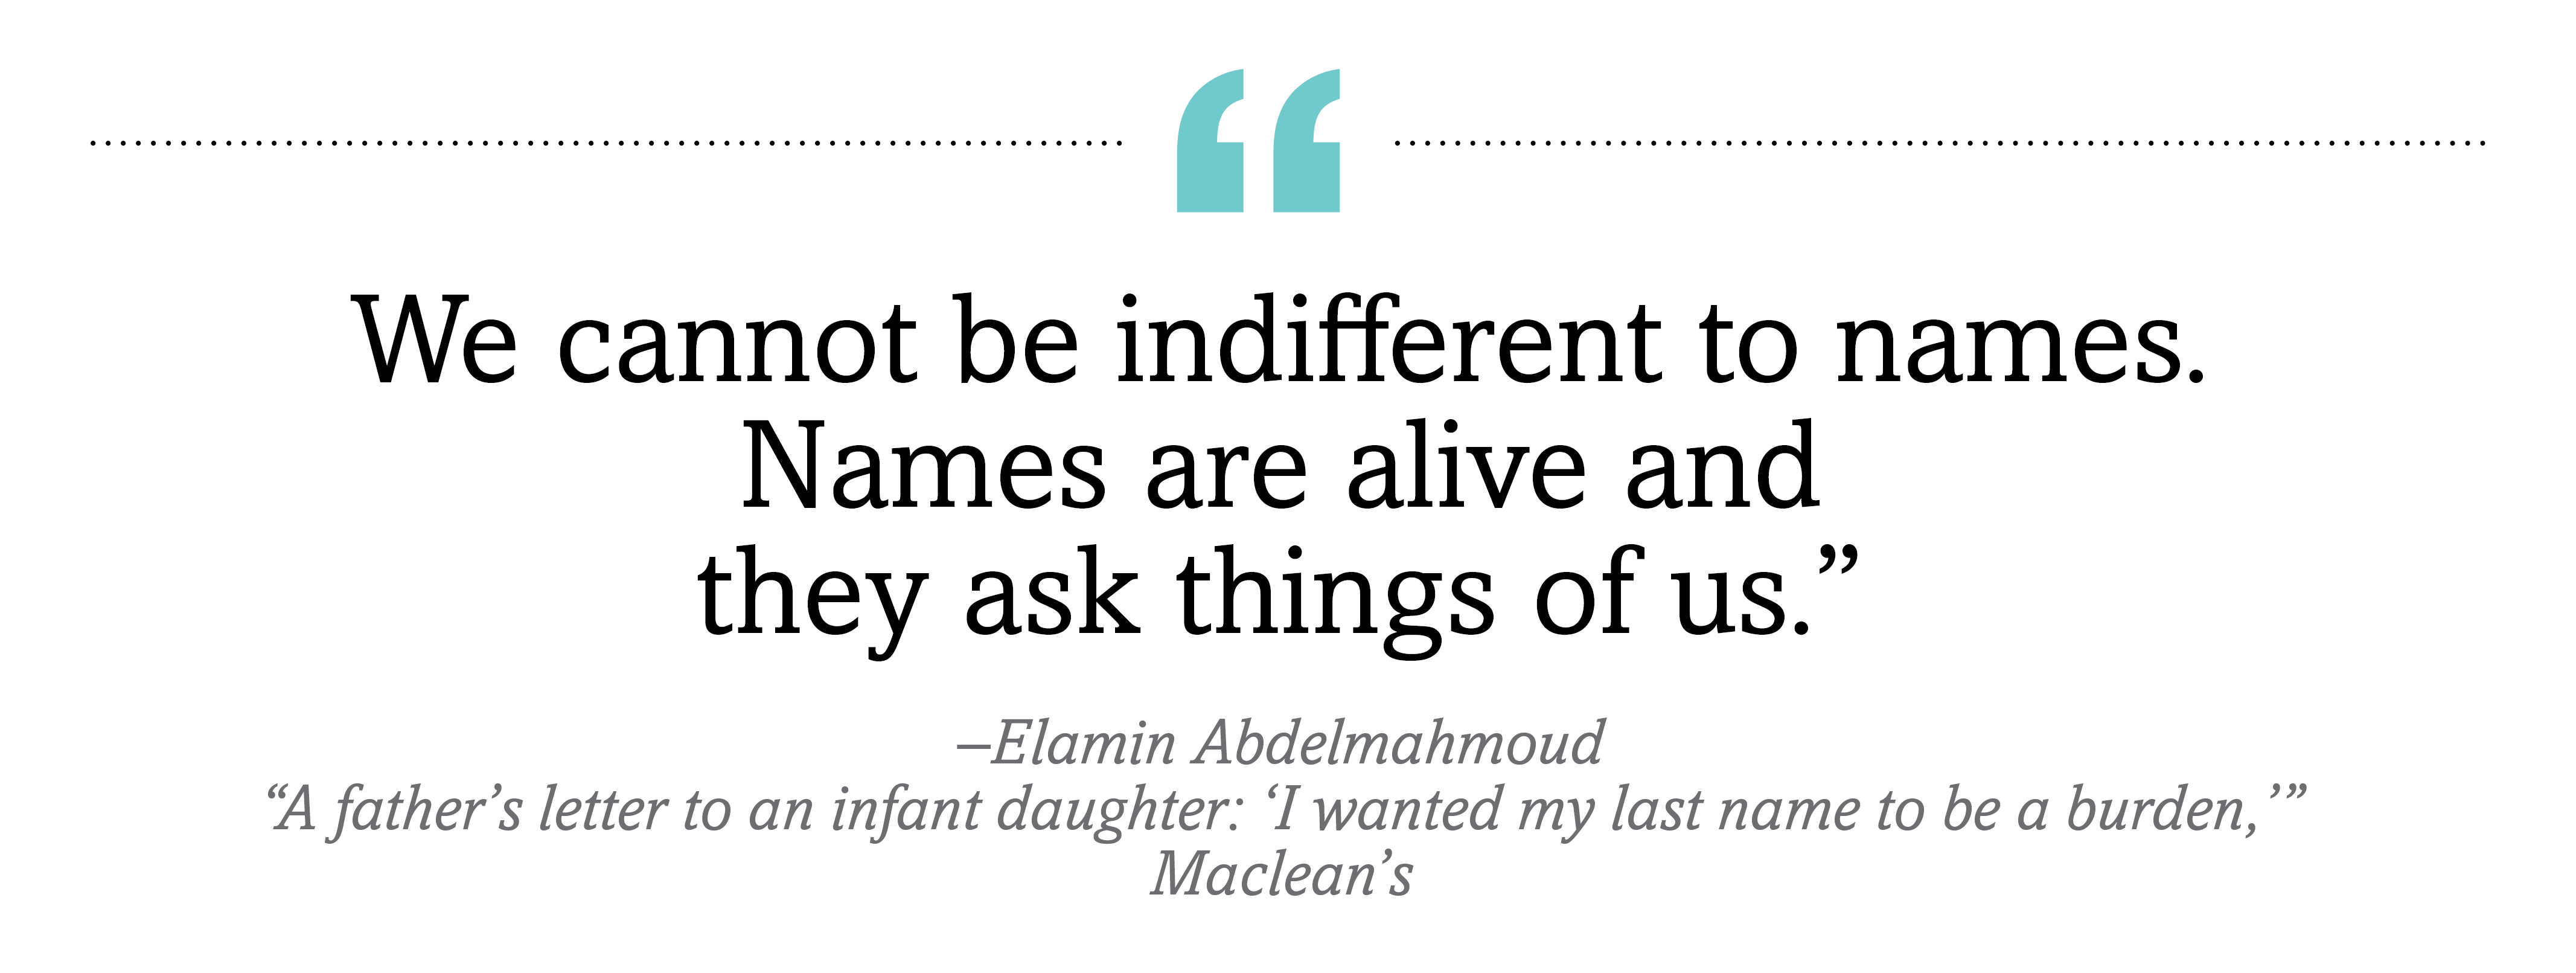 """We cannot be indifferent to names. Names are alive and they ask things of us."""